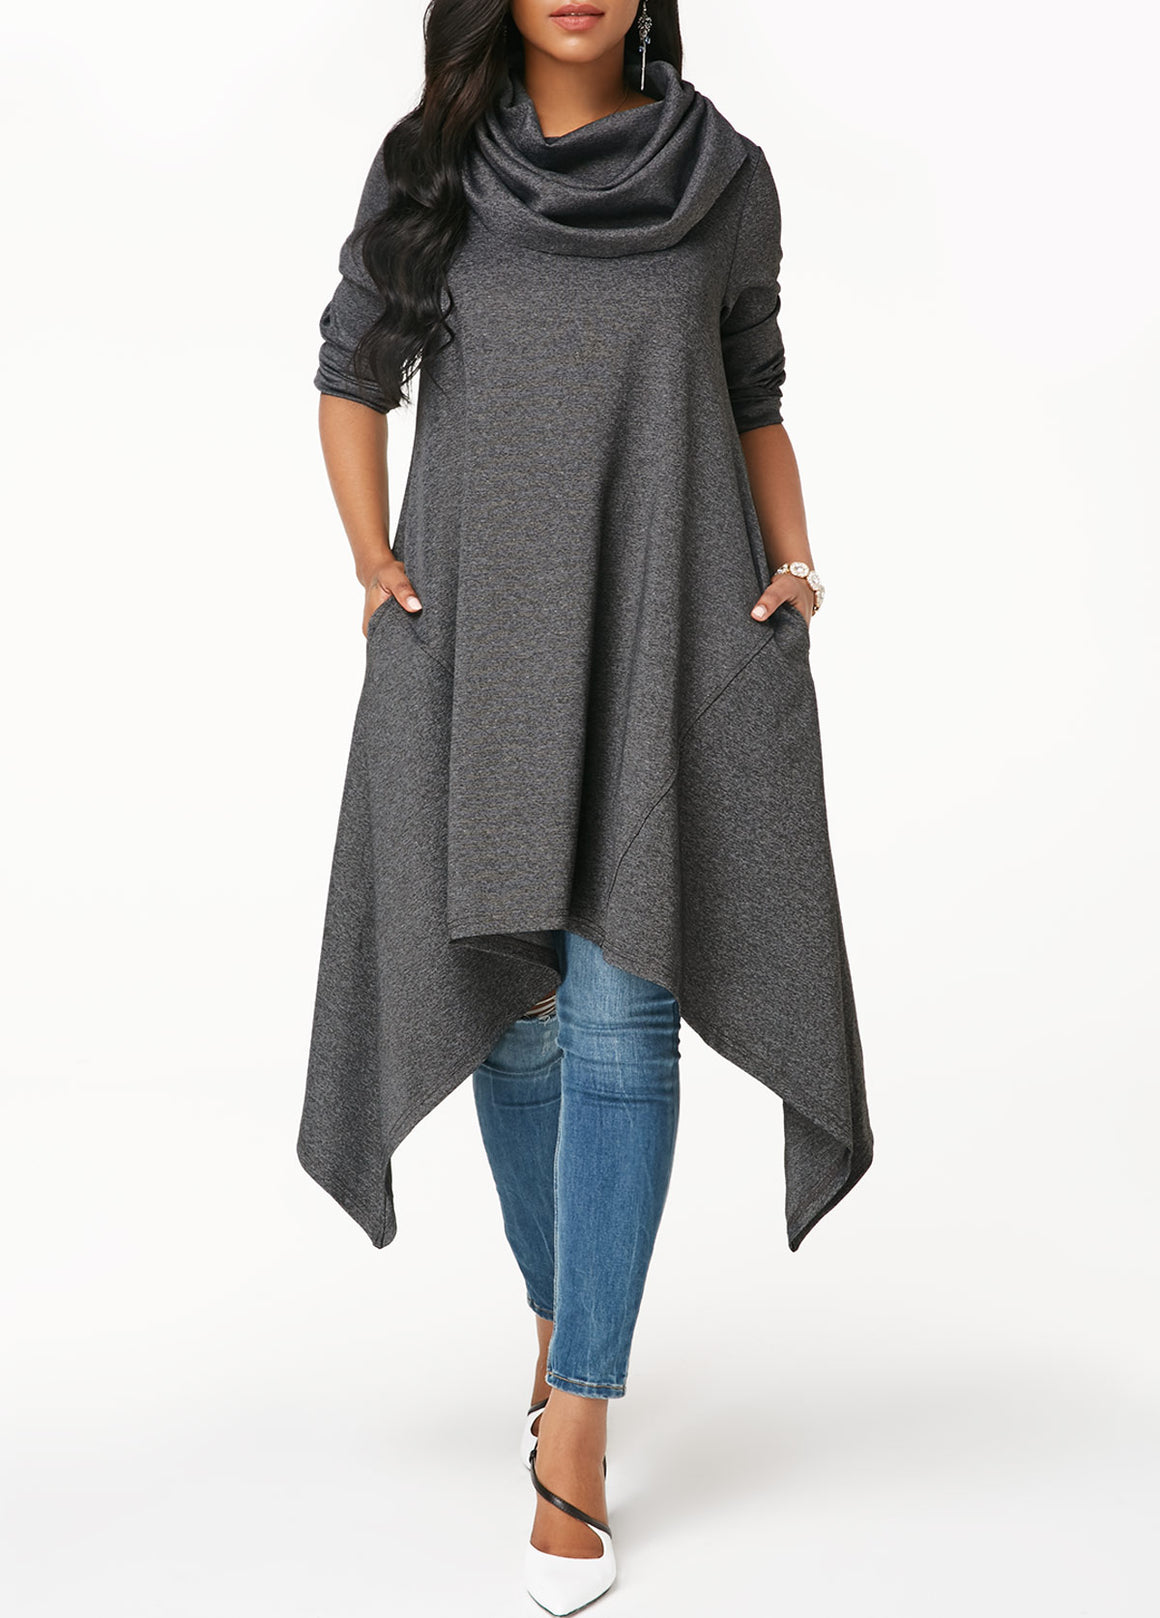 Grey Marl Asymmetric Hem Long Sleeve Sweatshirt